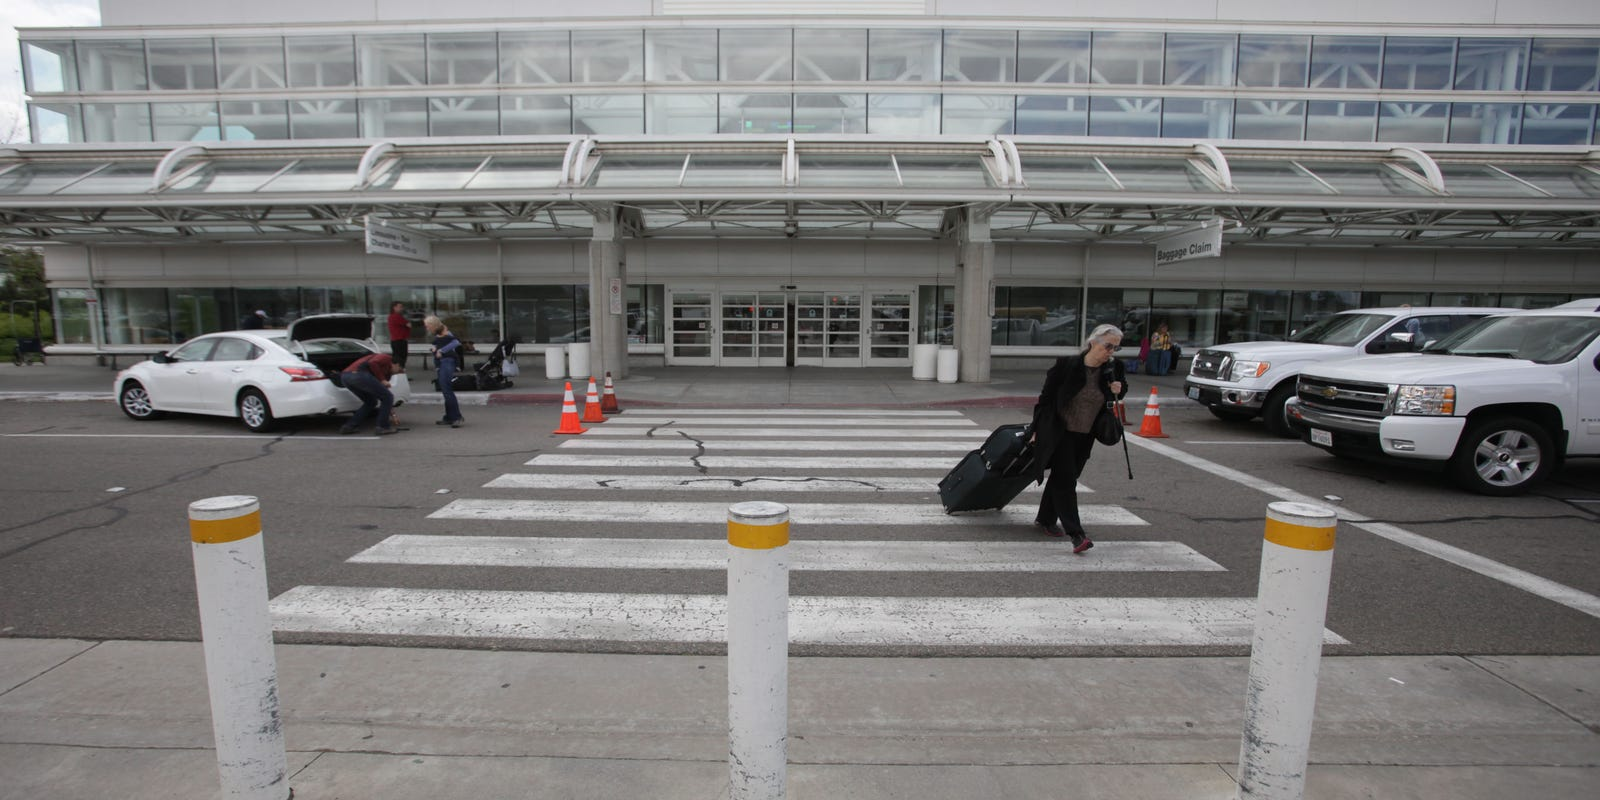 You've bought a ticket to Coachella or Stagecoach. Which airport do you use to get there?